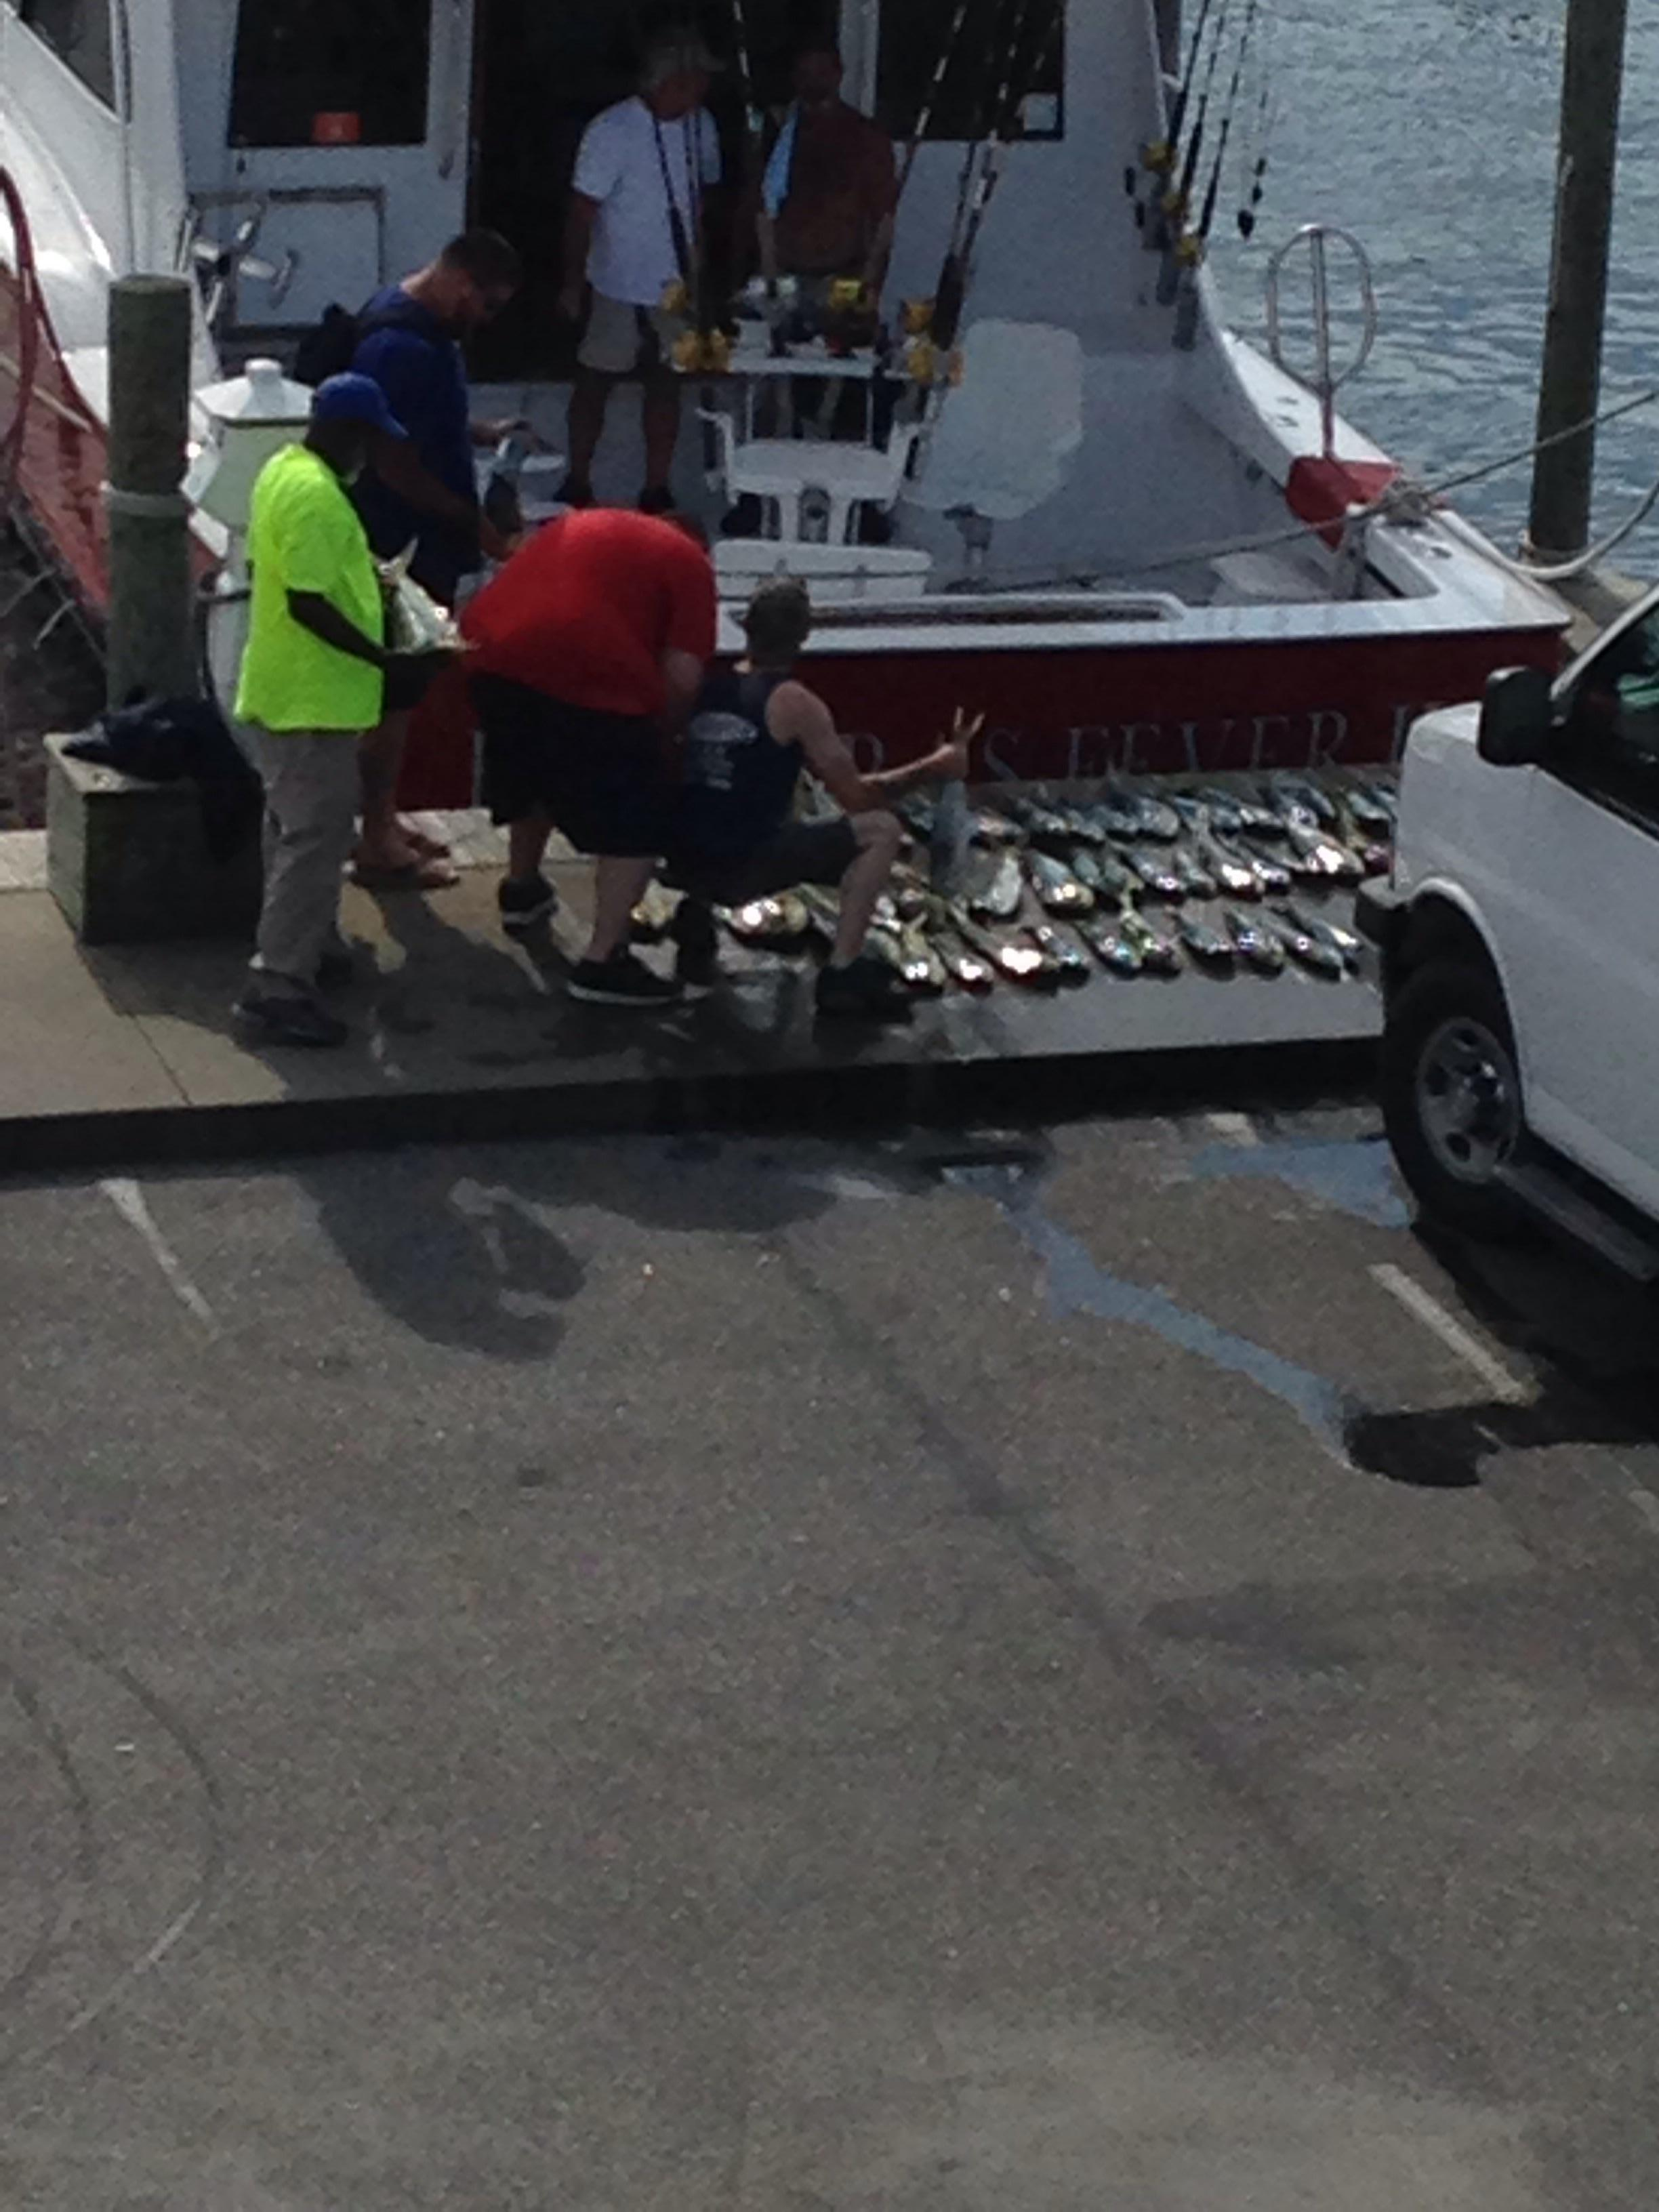 Saw the catch of the day come in